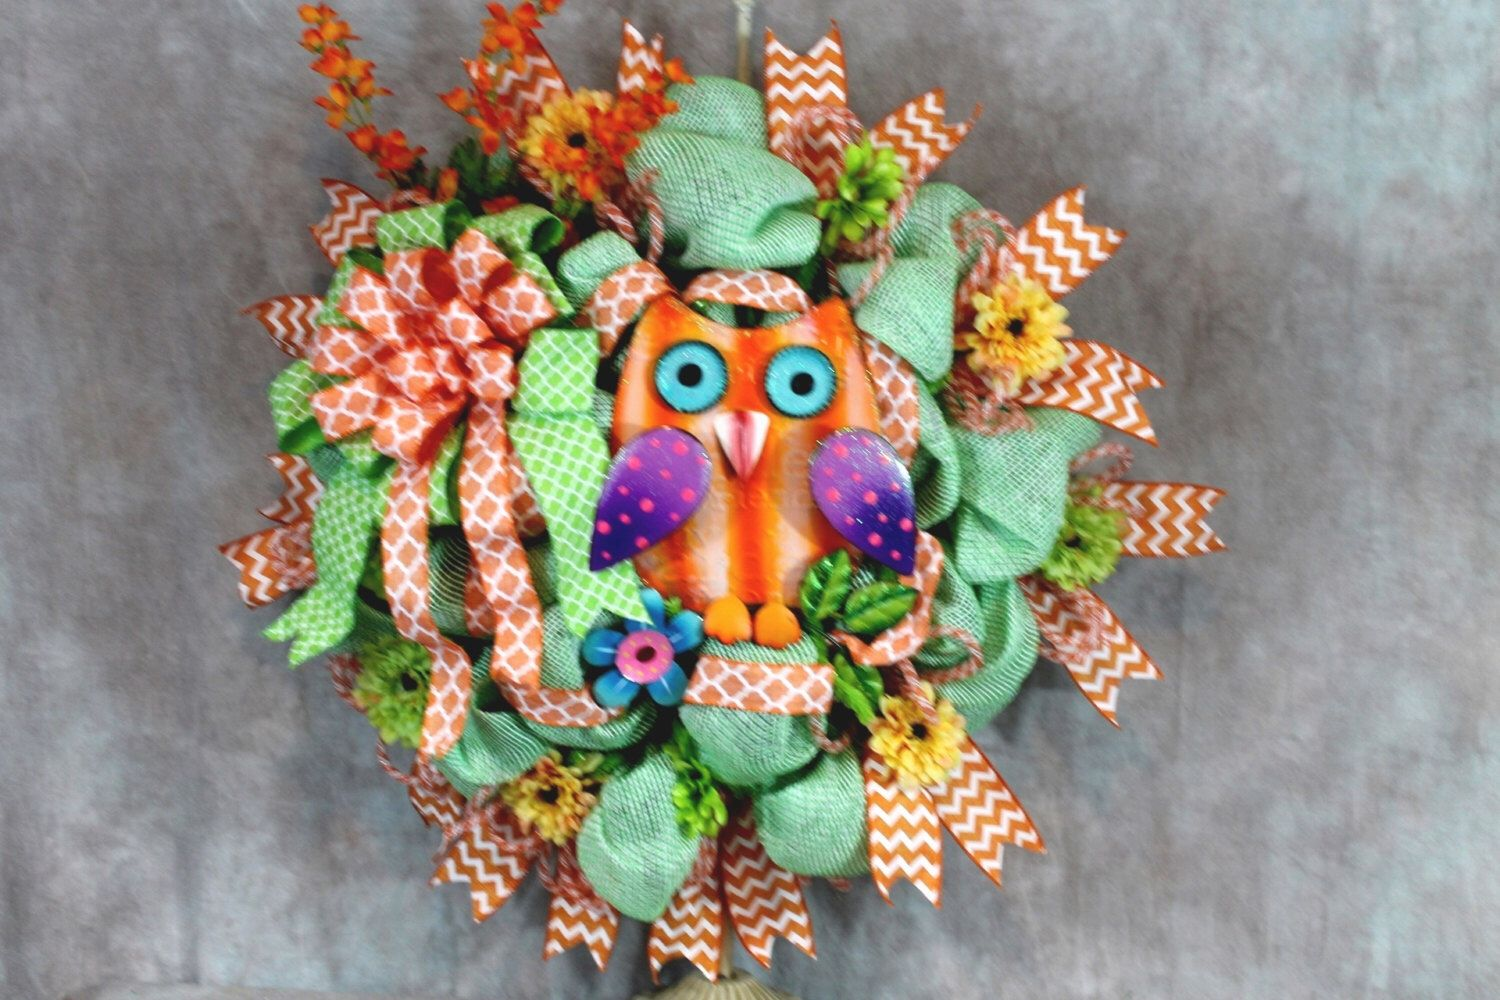 Owl Wreath, Orange and Green Wreath, Orange Owl Wreath, Owl Door Wreath, Orange Owl Door Wreath, Lime Green Wreath, Deco Mesh Wreath, Owl by SouthernCharmFlorals on Etsy https://www.etsy.com/listing/230206261/owl-wreath-orange-and-green-wreath